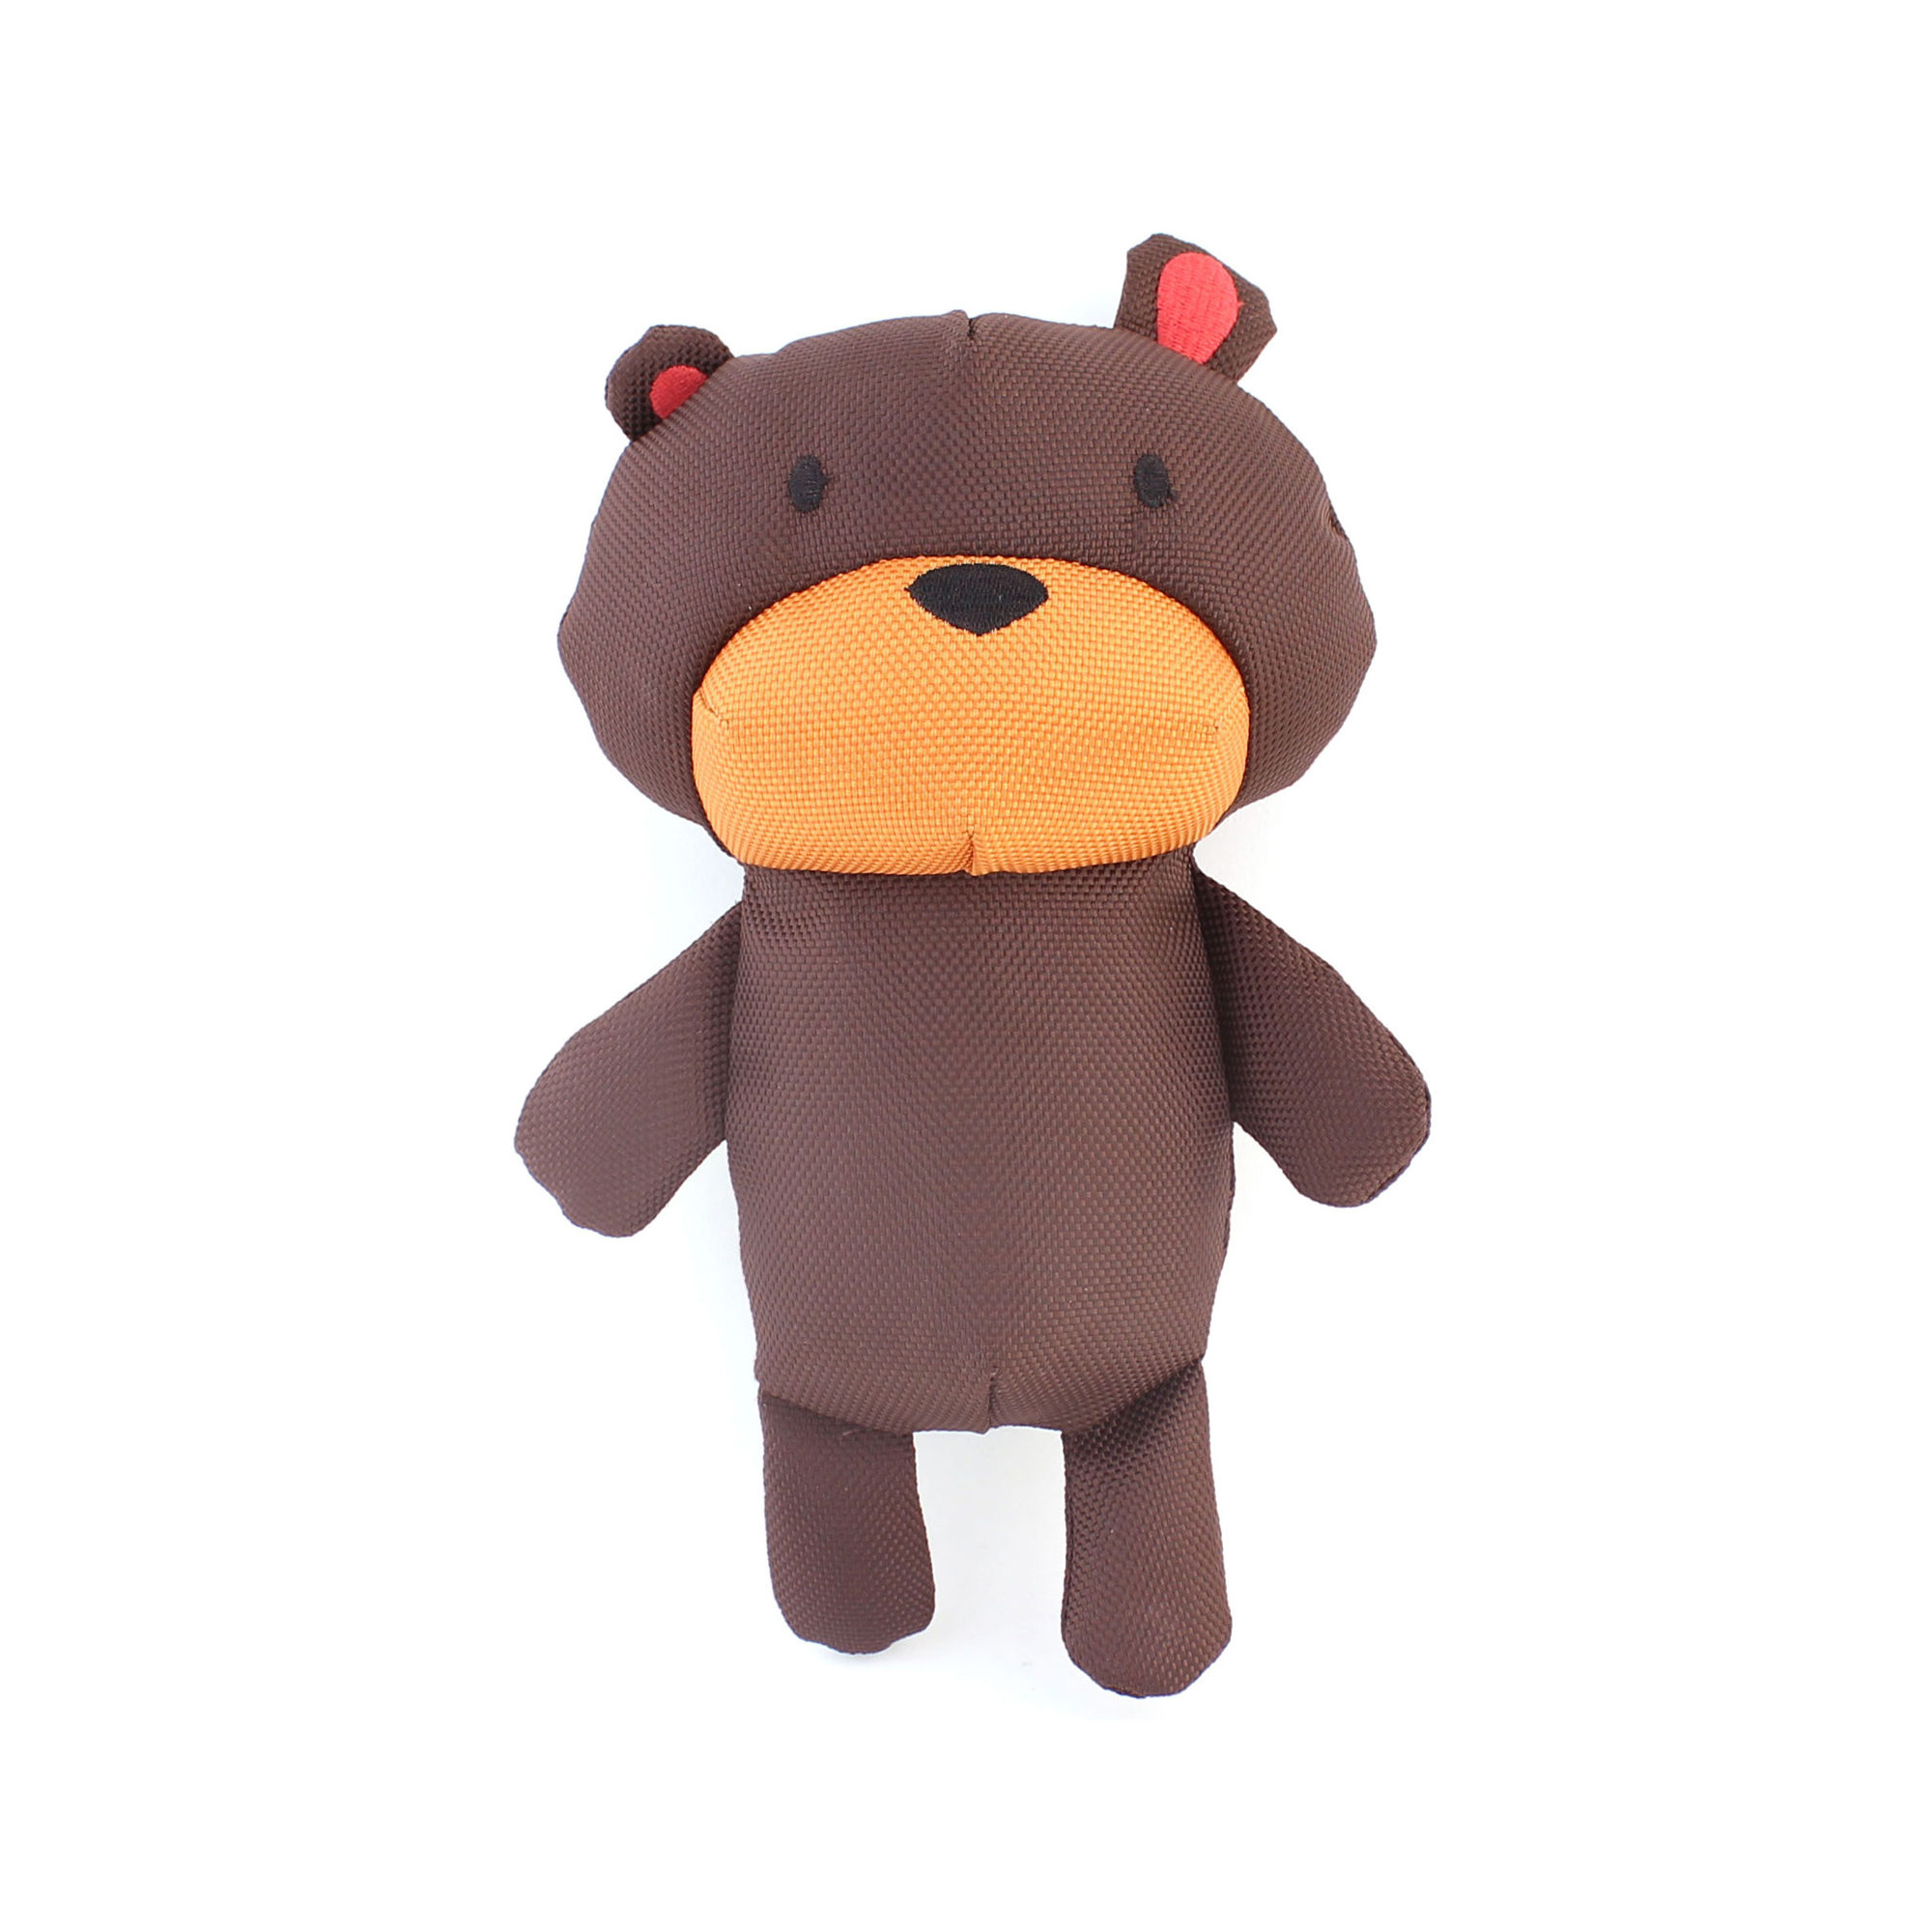 Beco Cuddly Soft Toy Toby the Teddy - M